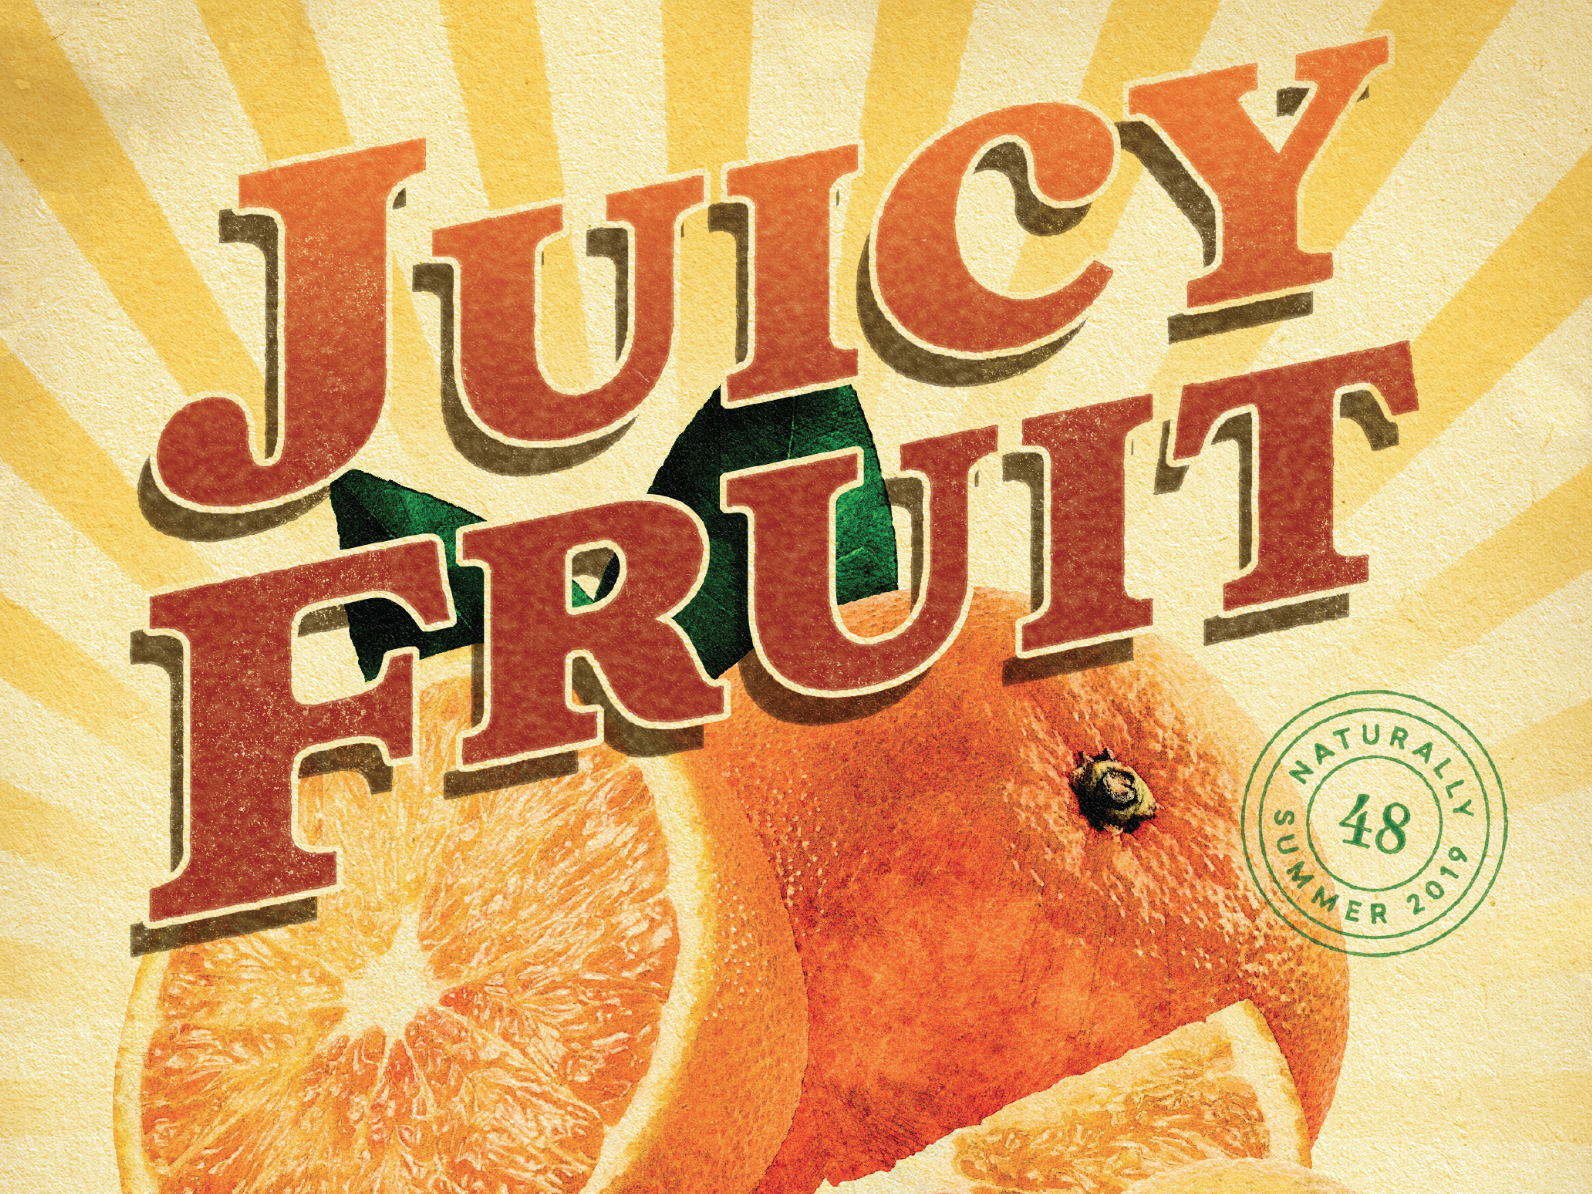 Juicy Fruit fruit poster type magazine textures